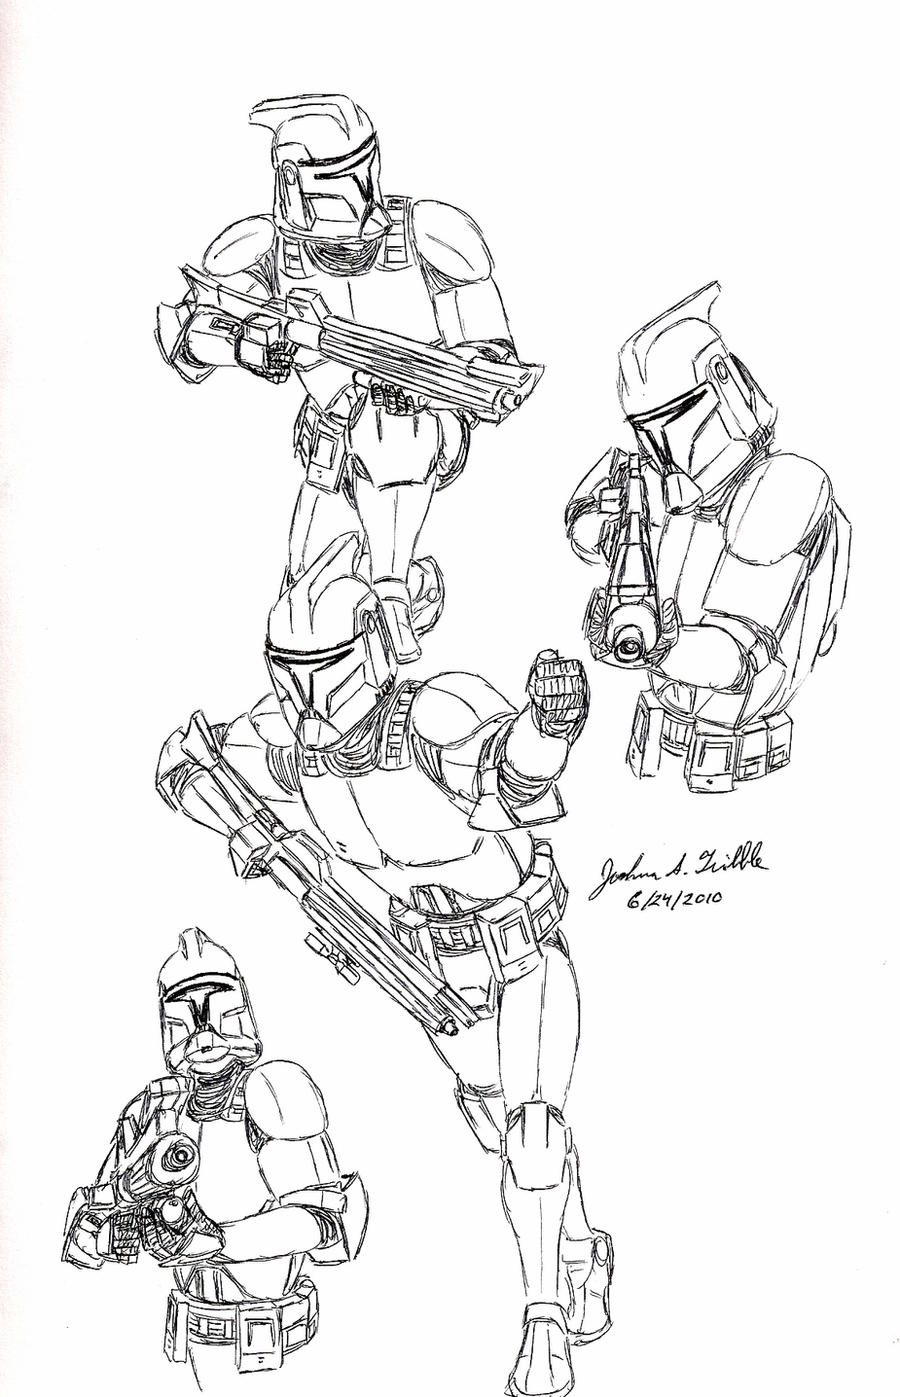 clone trooper pose sketches 2 by tribble industries on deviantart